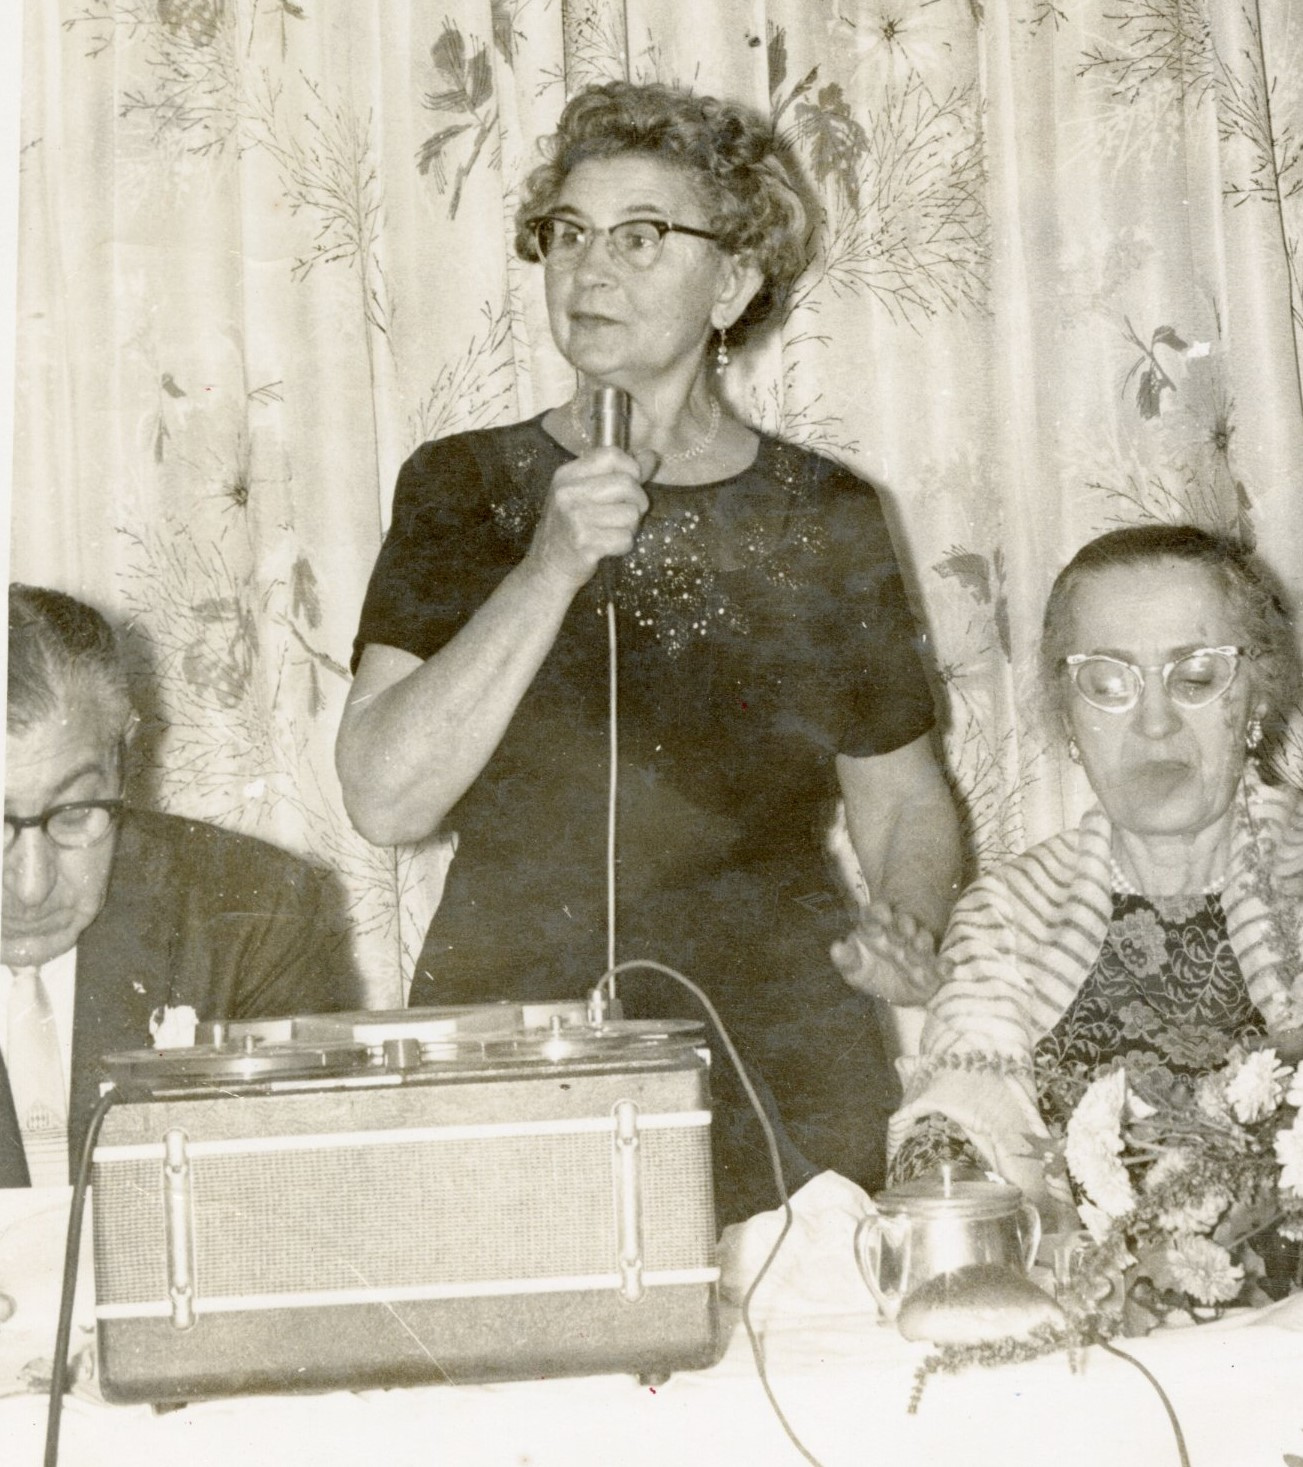 Photograph of woman standing and speaking into a microphone